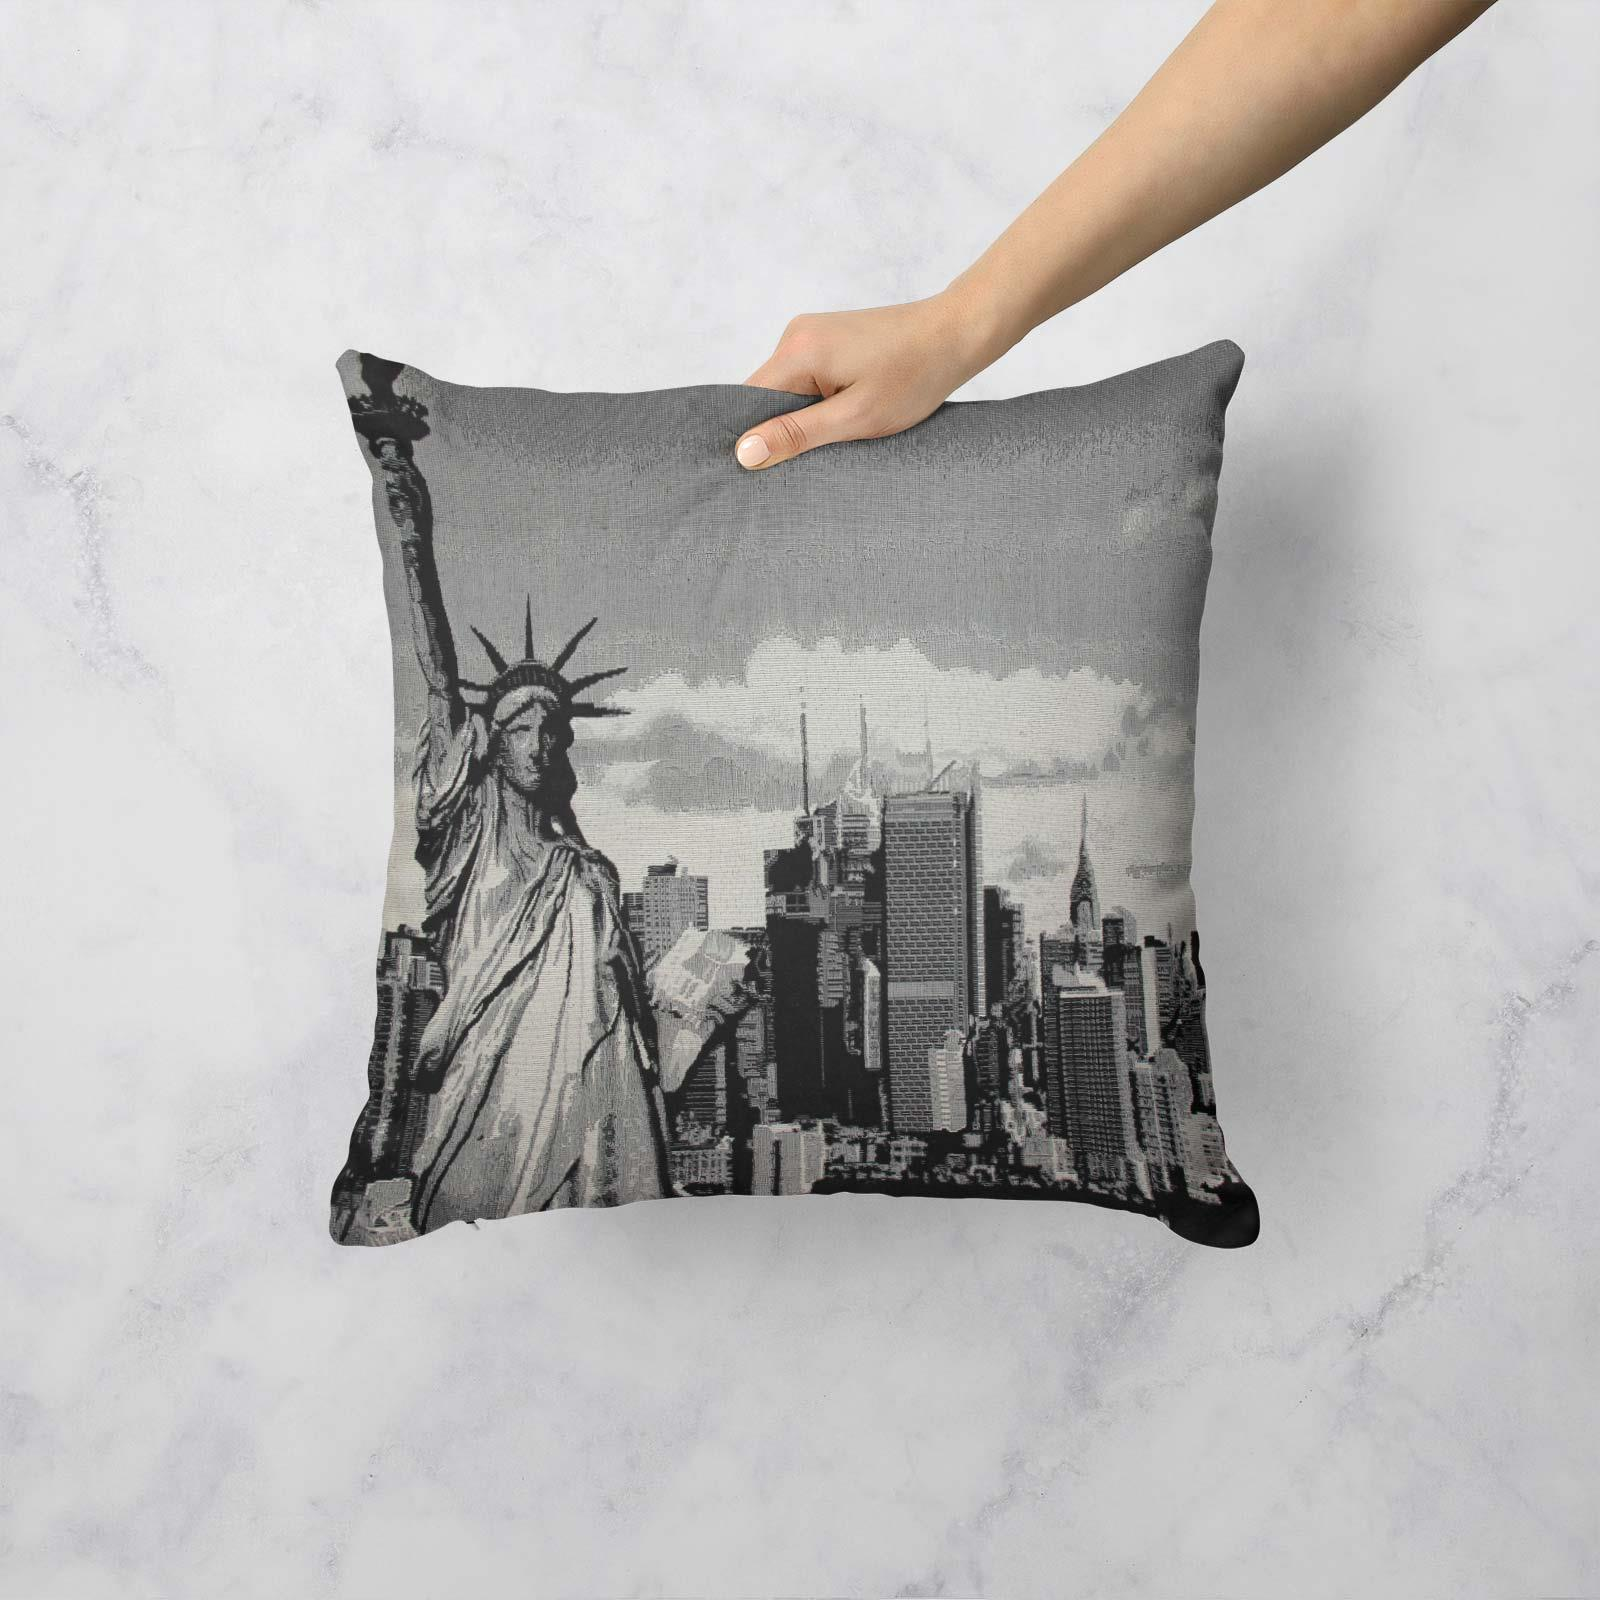 Tapestry-Cushion-Covers-Vintage-Pillow-Cover-Collection-18-034-45cm-Filled-Cushions thumbnail 115